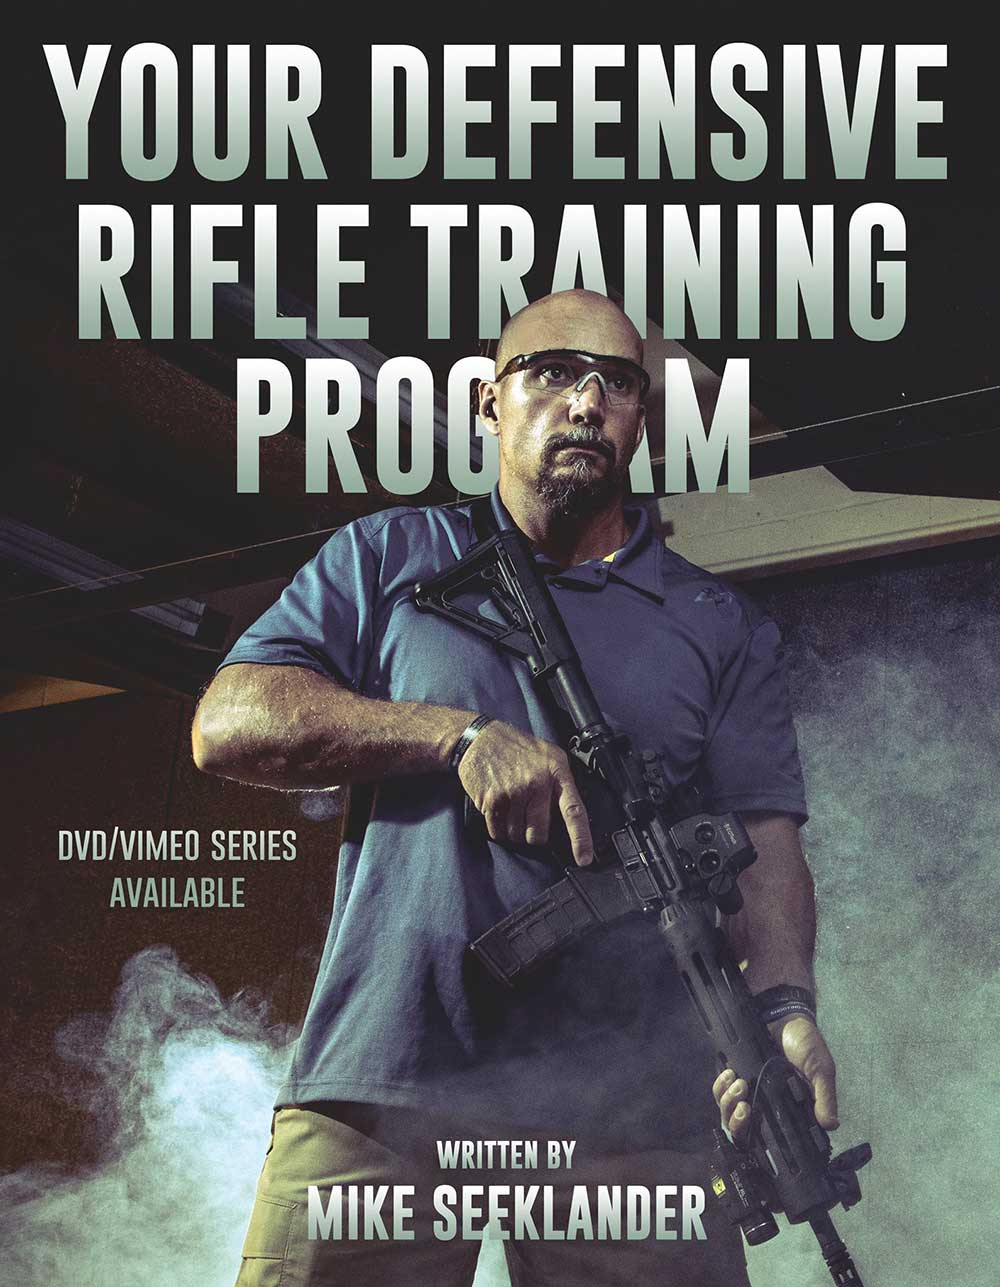 Your Defensive Rifle Training Program